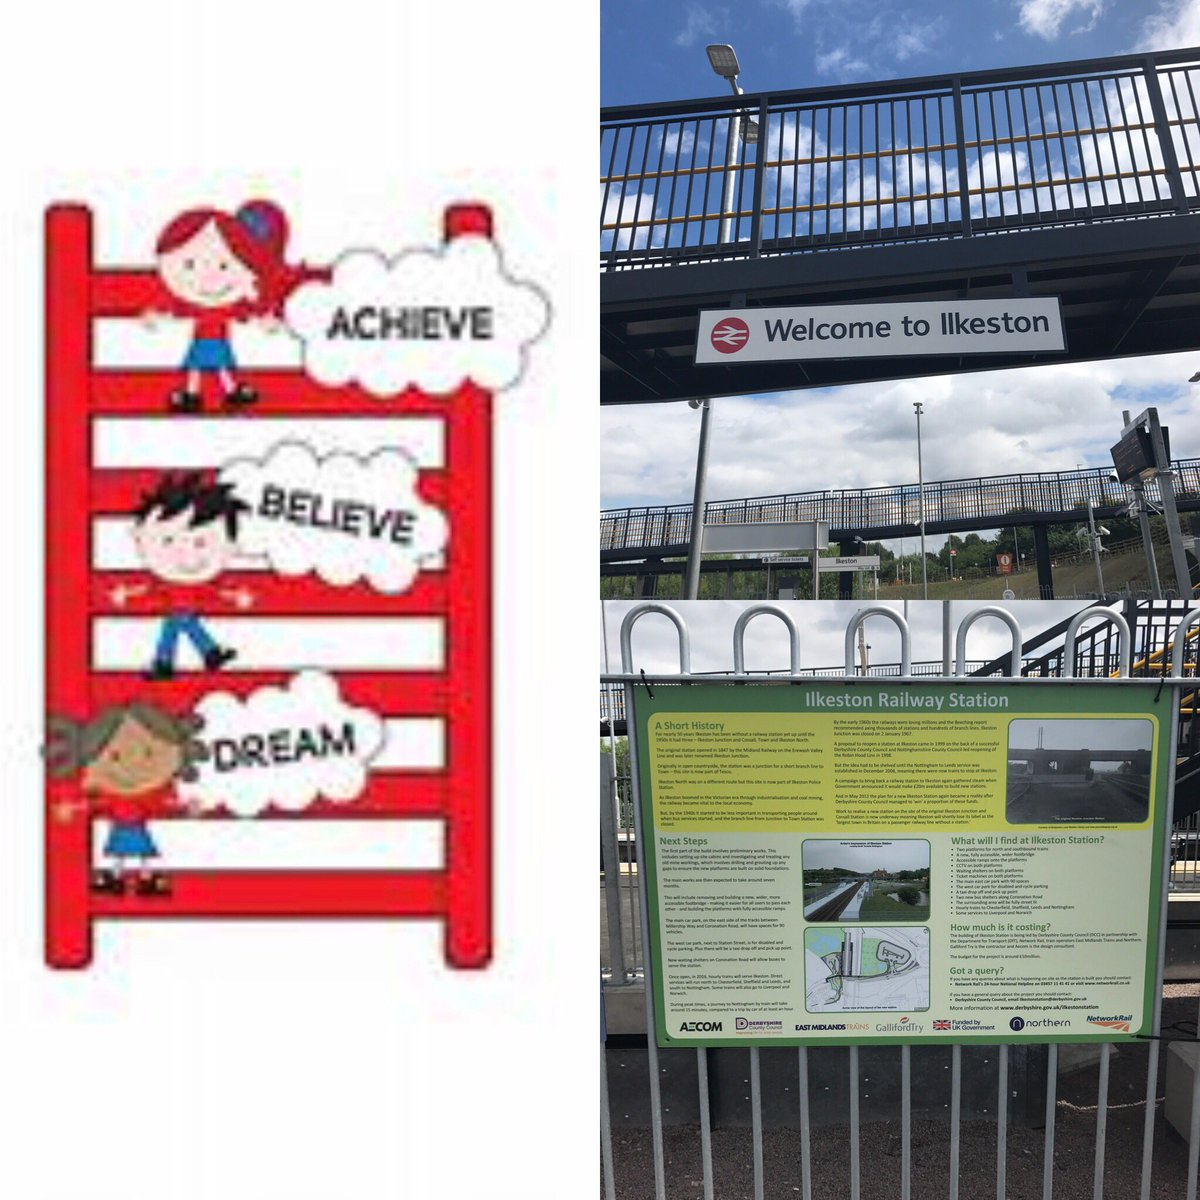 Lots of exciting plans for our new #stationadopters at #Ilkeston @ChaucerJun @KerryLWheatley @EMTrains @ACoRPOffice #communityrail<br>http://pic.twitter.com/8Kdqs1rwjs